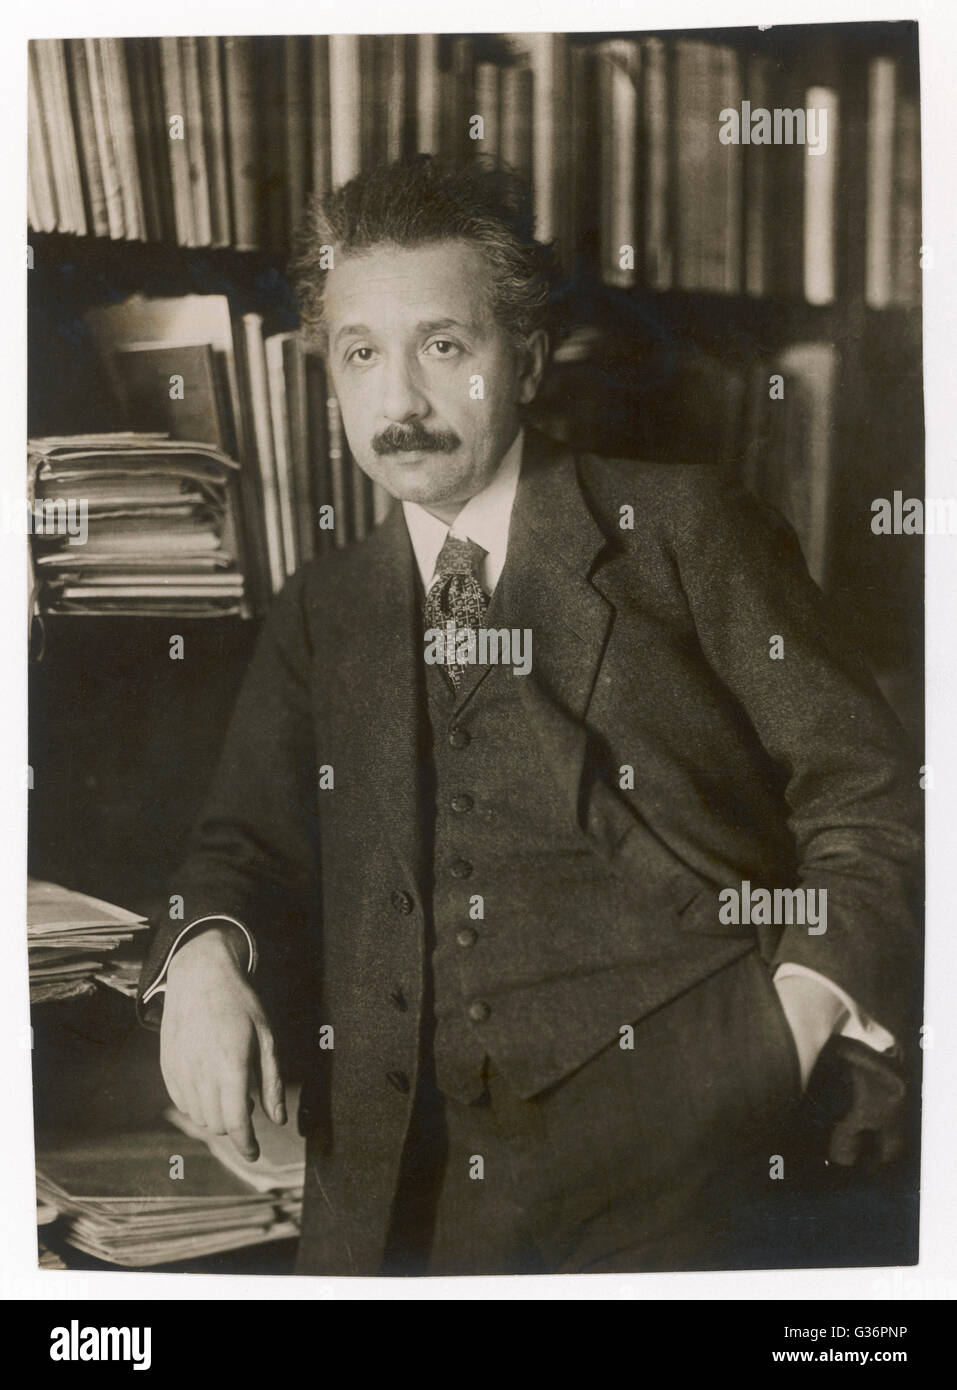 Albert Einstein (1879-1955), theoretical physicist, philosopher and author.  Seen here in front of bookshelves. - Stock Image